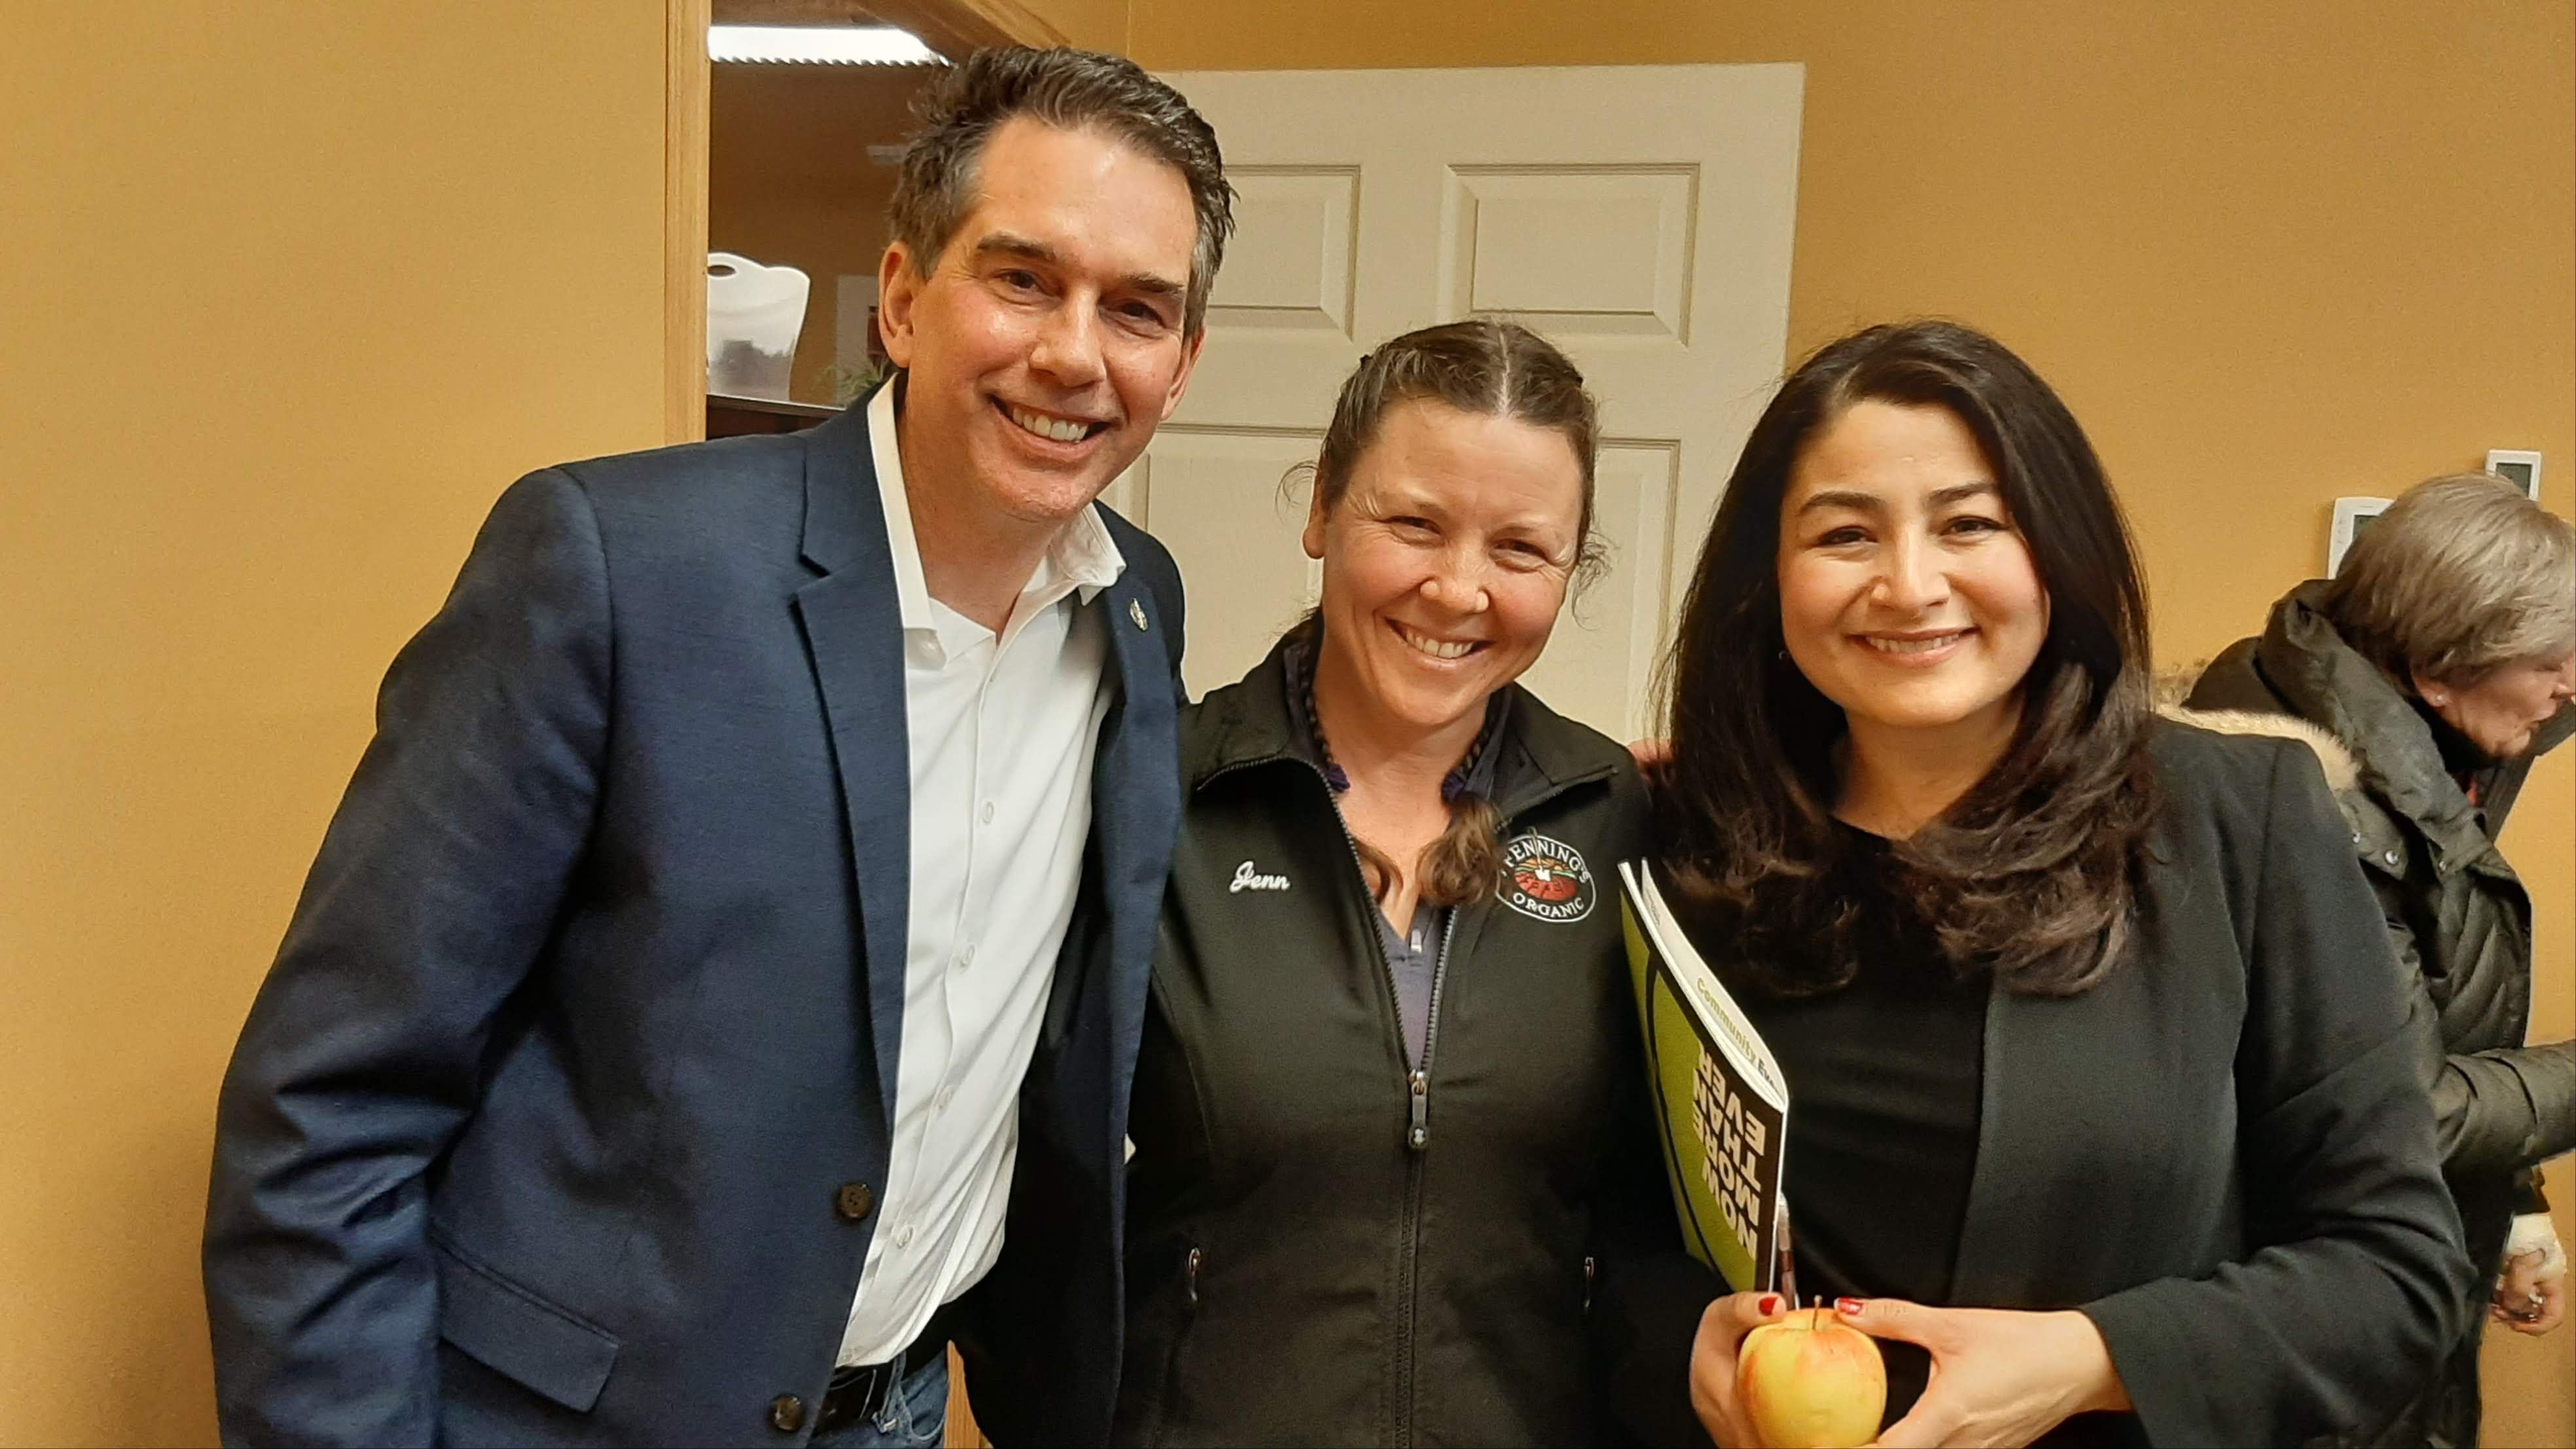 Kitchener-Conestoga MP Tim Louis, who organized the roundtable discussion, with Wilmot councillor/farm owner Jenn Pfenning, and Maryam Monsef, federal Minister for Women and Gender Equality and Rural Economic Development.